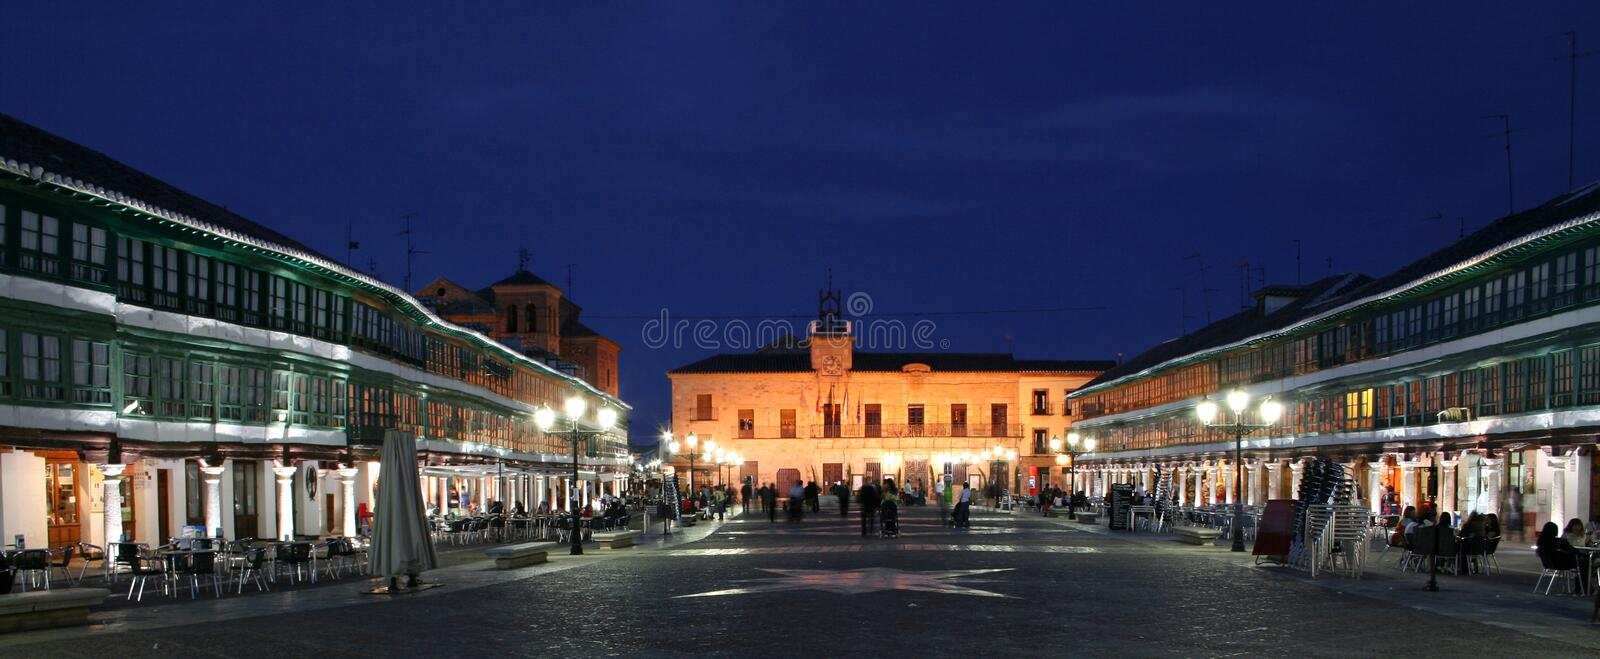 Almagro Nightlife royalty free stock photos